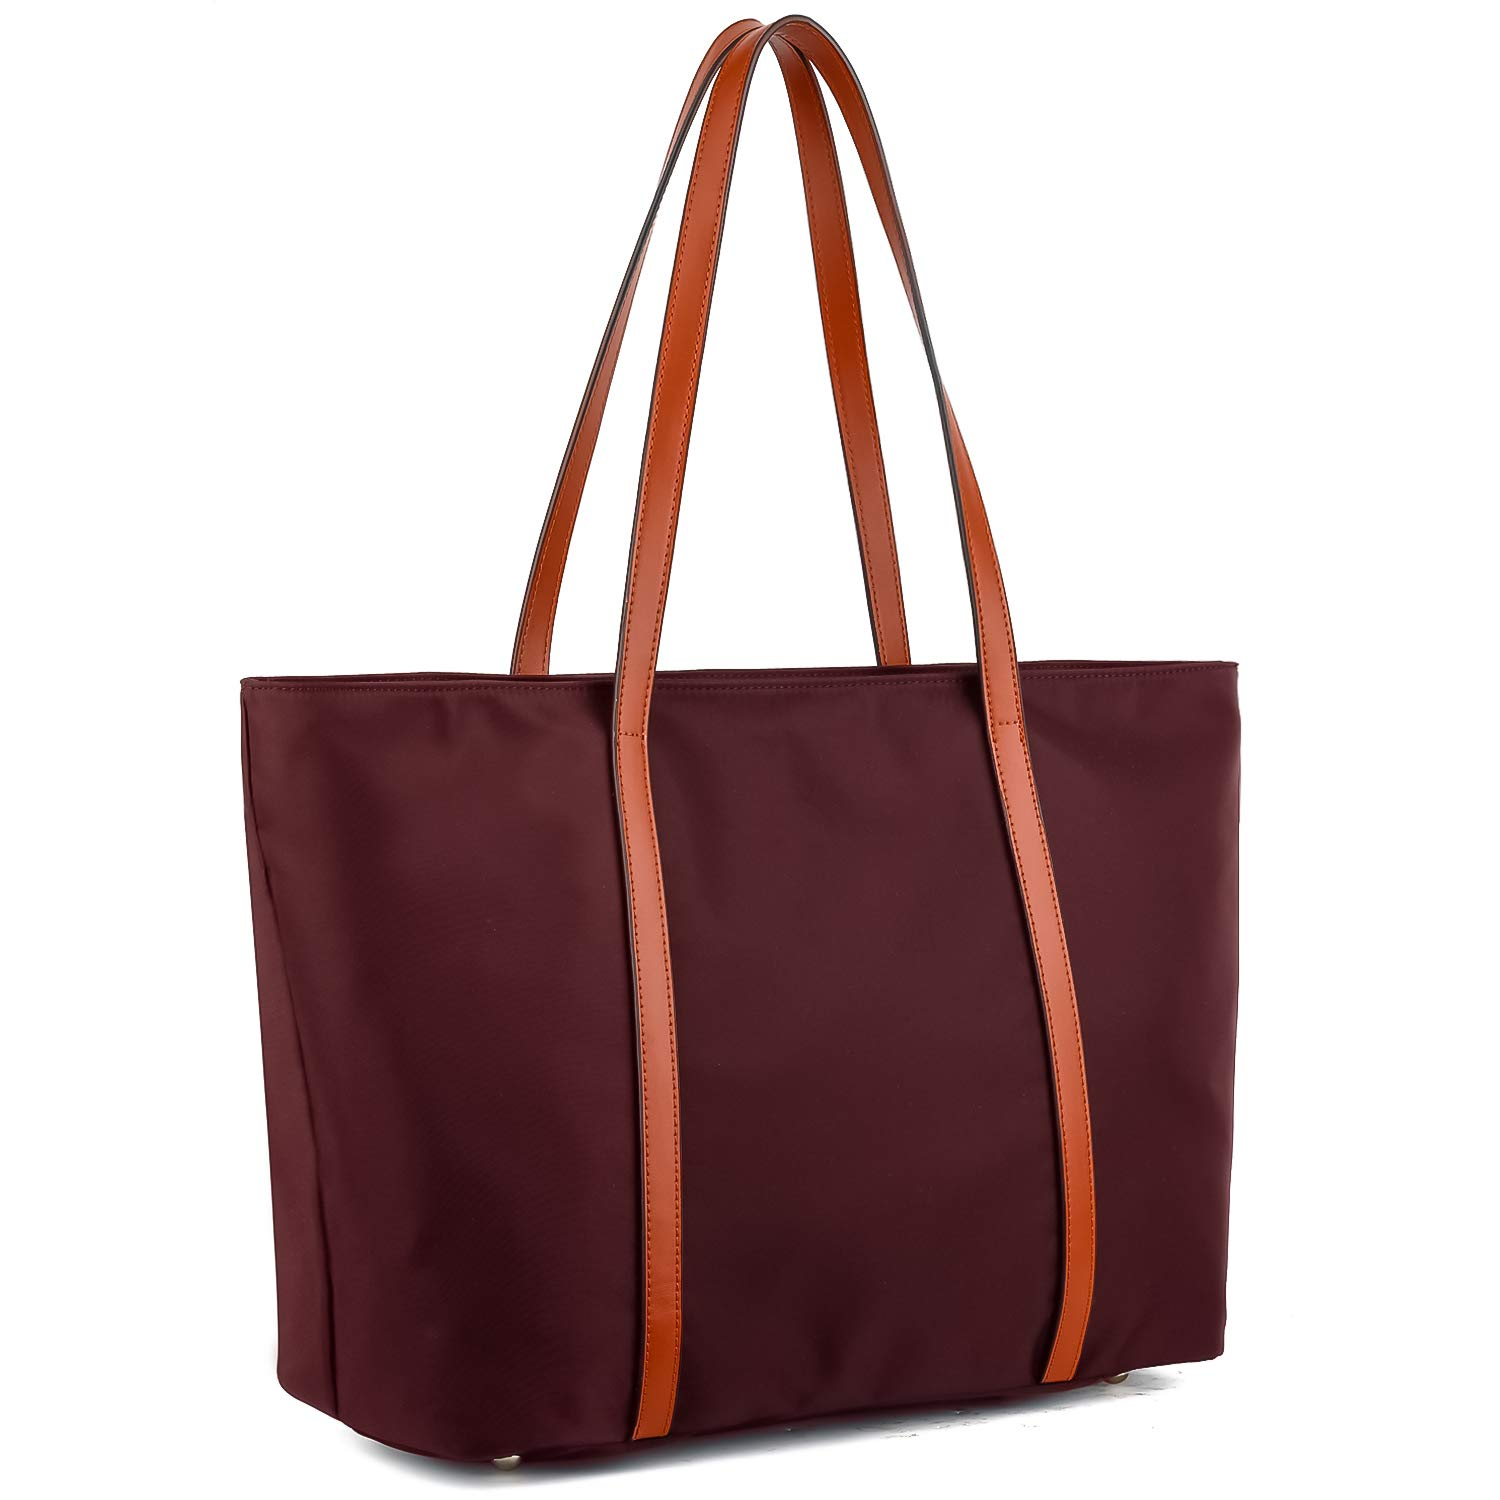 YALUXE Women's Oxford Nylon Large Capacity Work fit 15.6 inch Tote Shoulder Bag brown&red